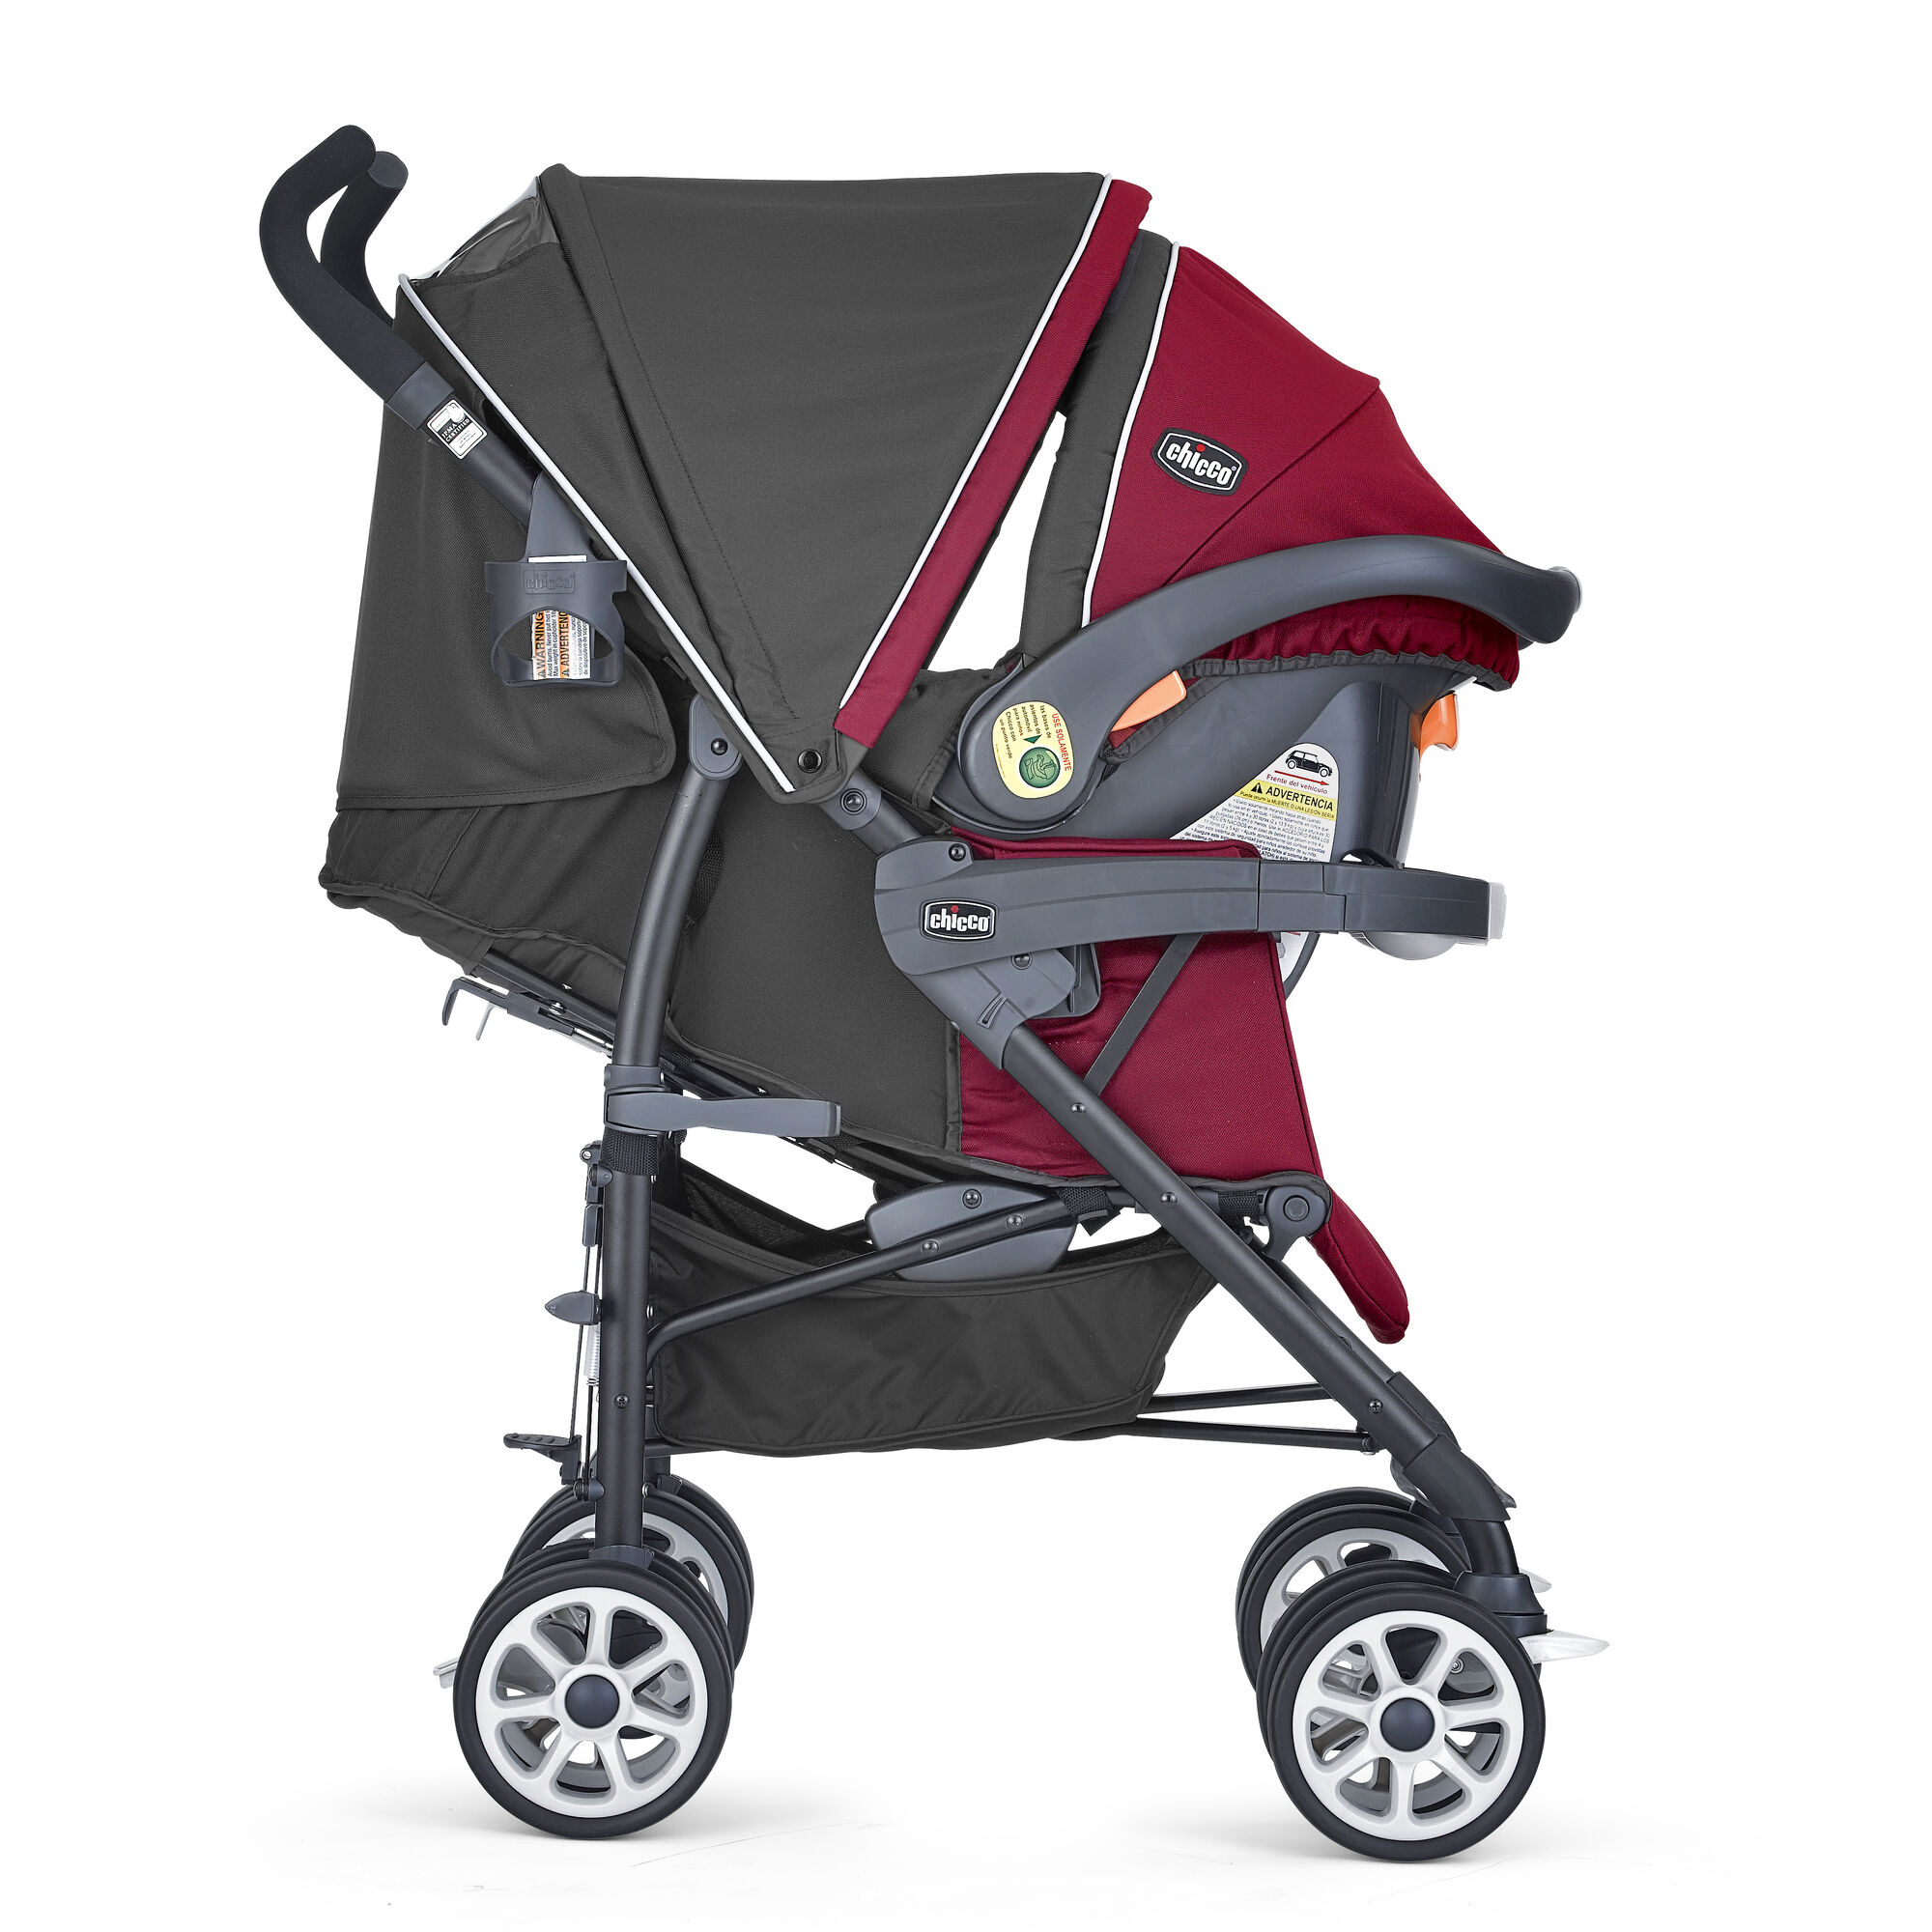 7b019602e ... The Chicco Neuvo Travel system granita features an adjustable,  removable canopy with peek-a ...